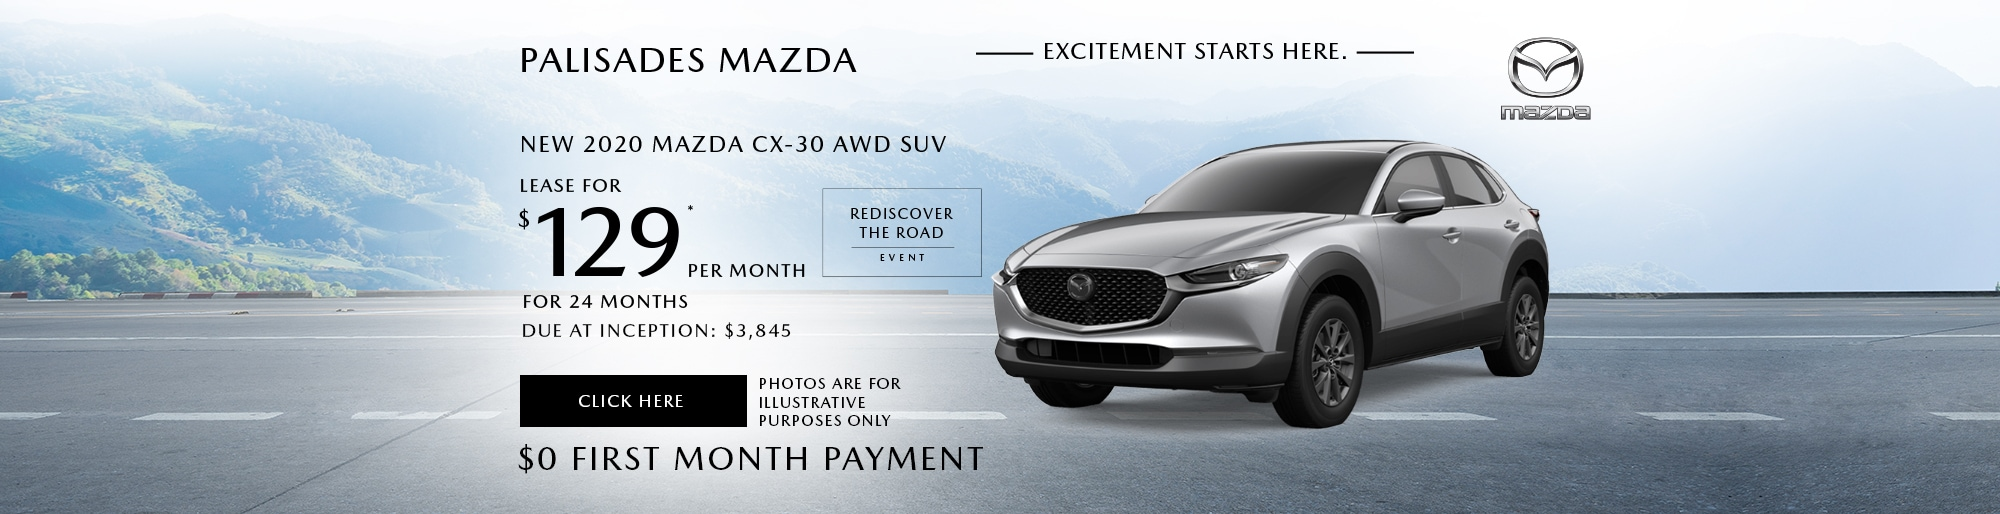 Mazda CX-30 lease deal image